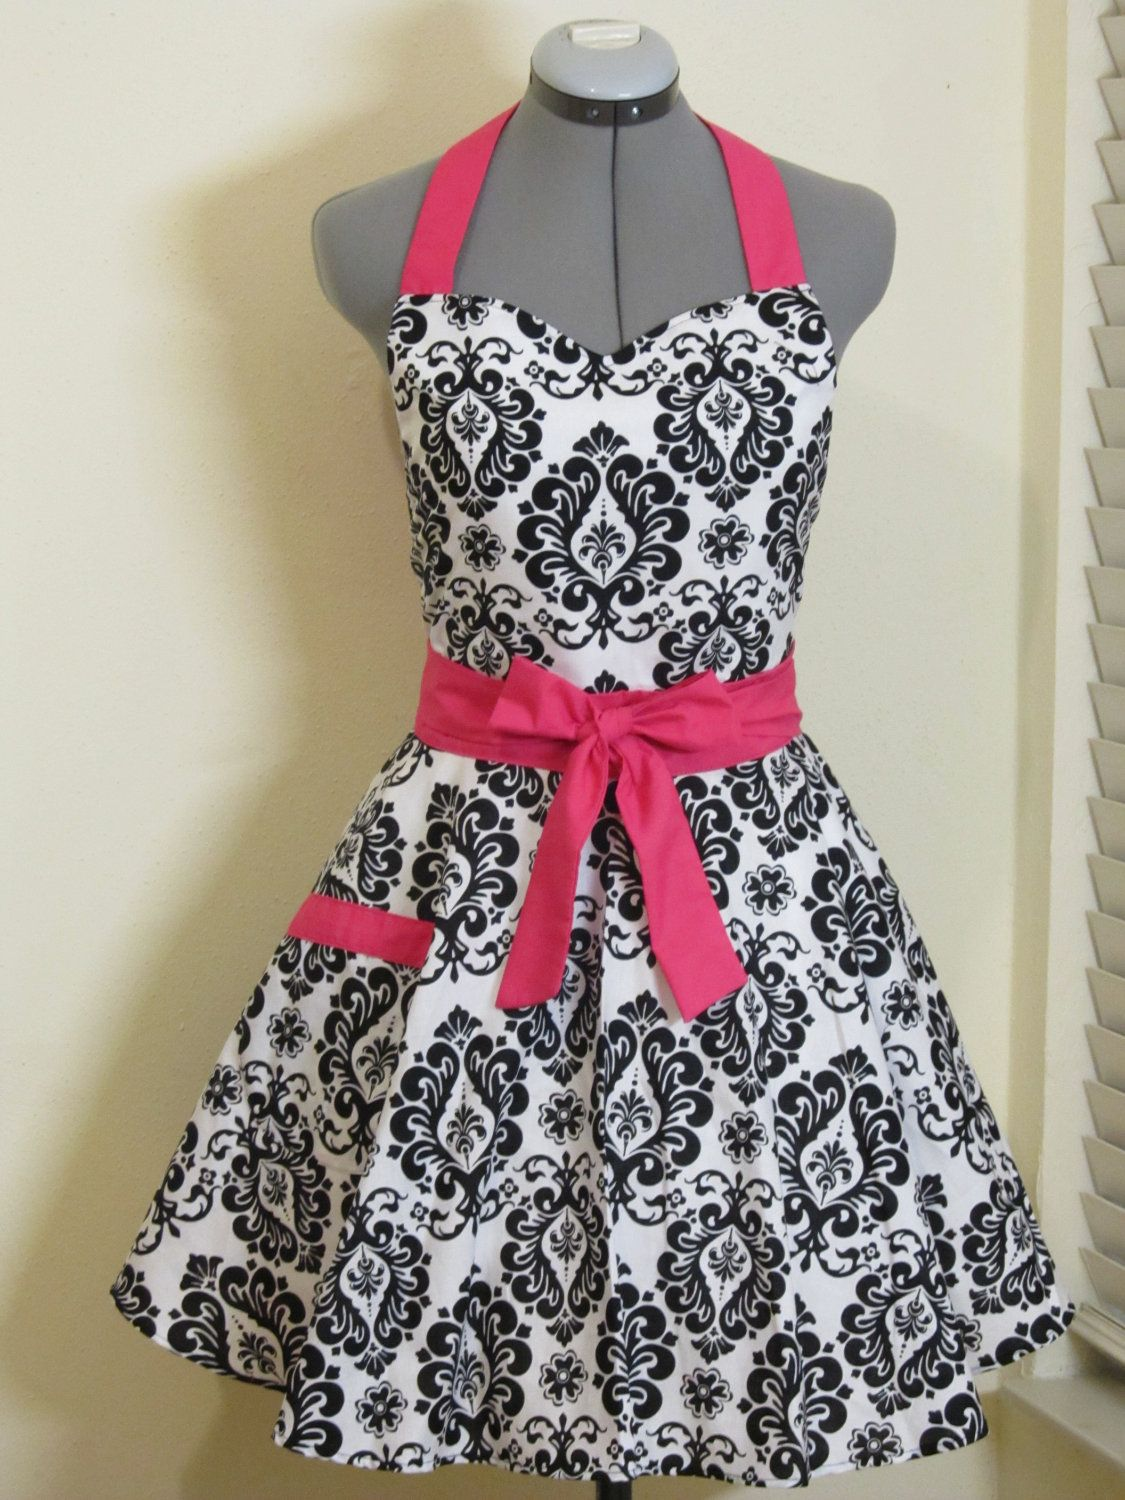 cute kitchen aprons cart with stools sweetheart hostess apron black damask hot pink full